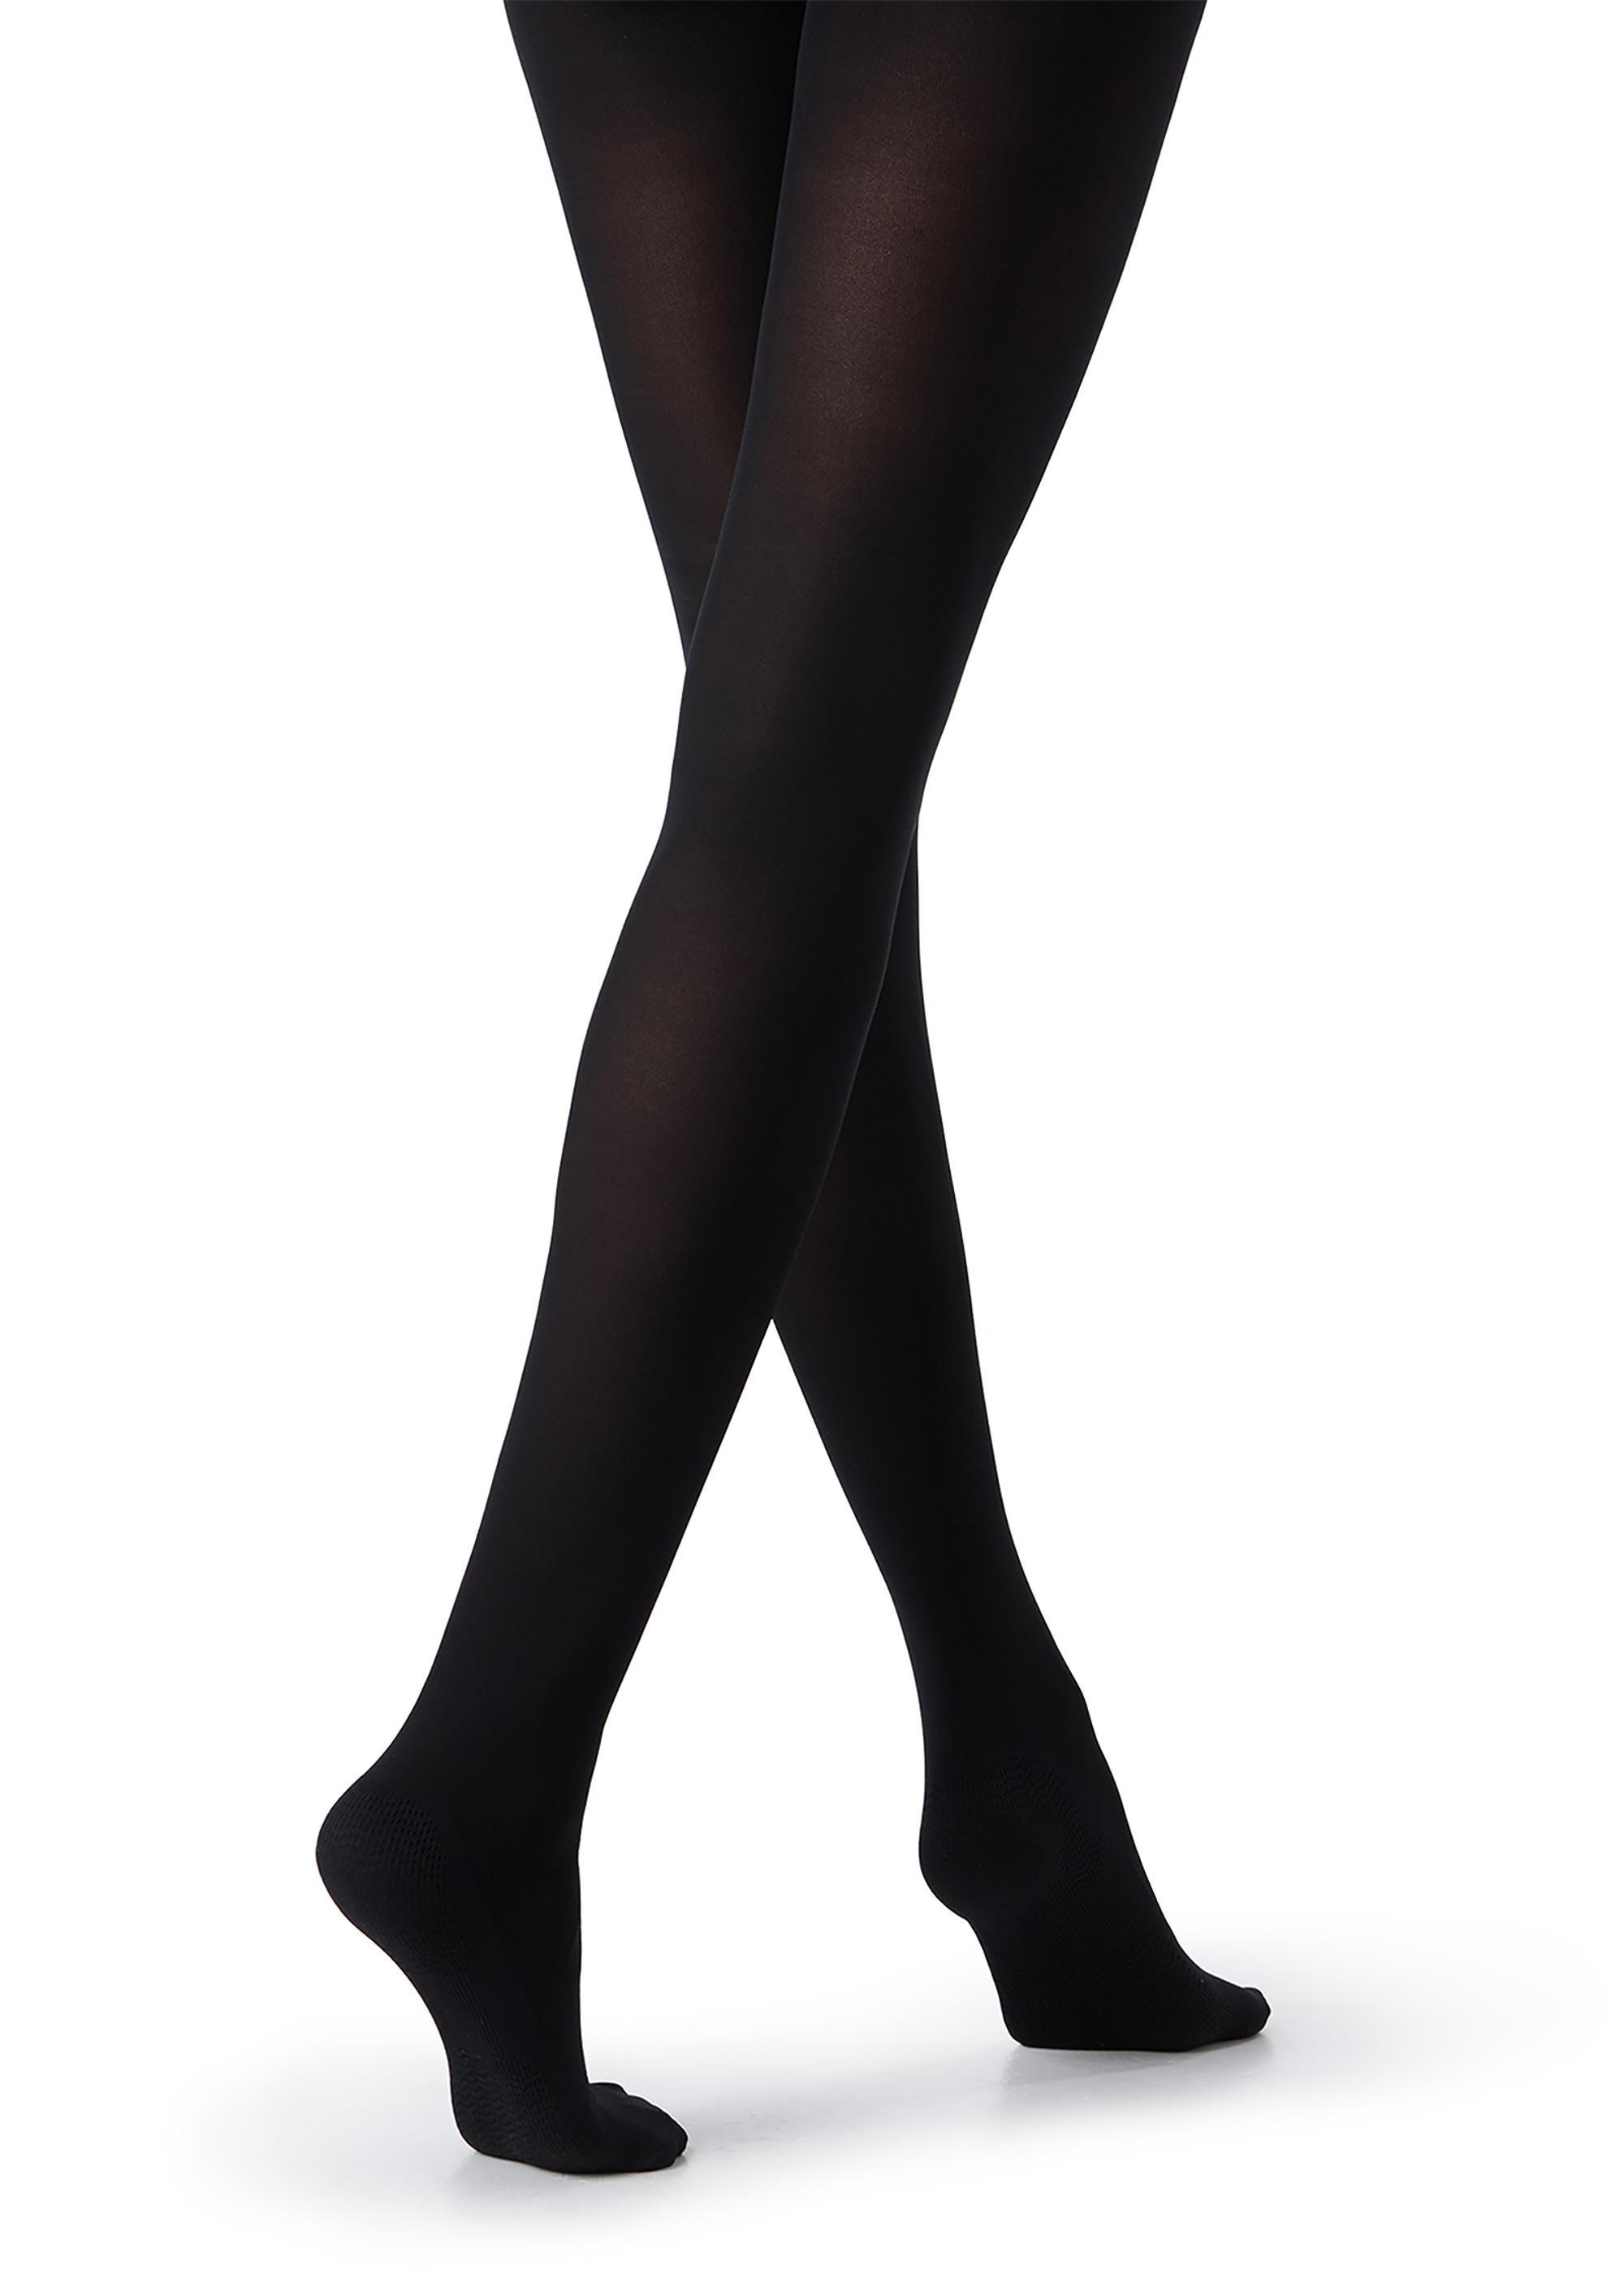 Tight pantyhose: varieties. Composition and description of the product